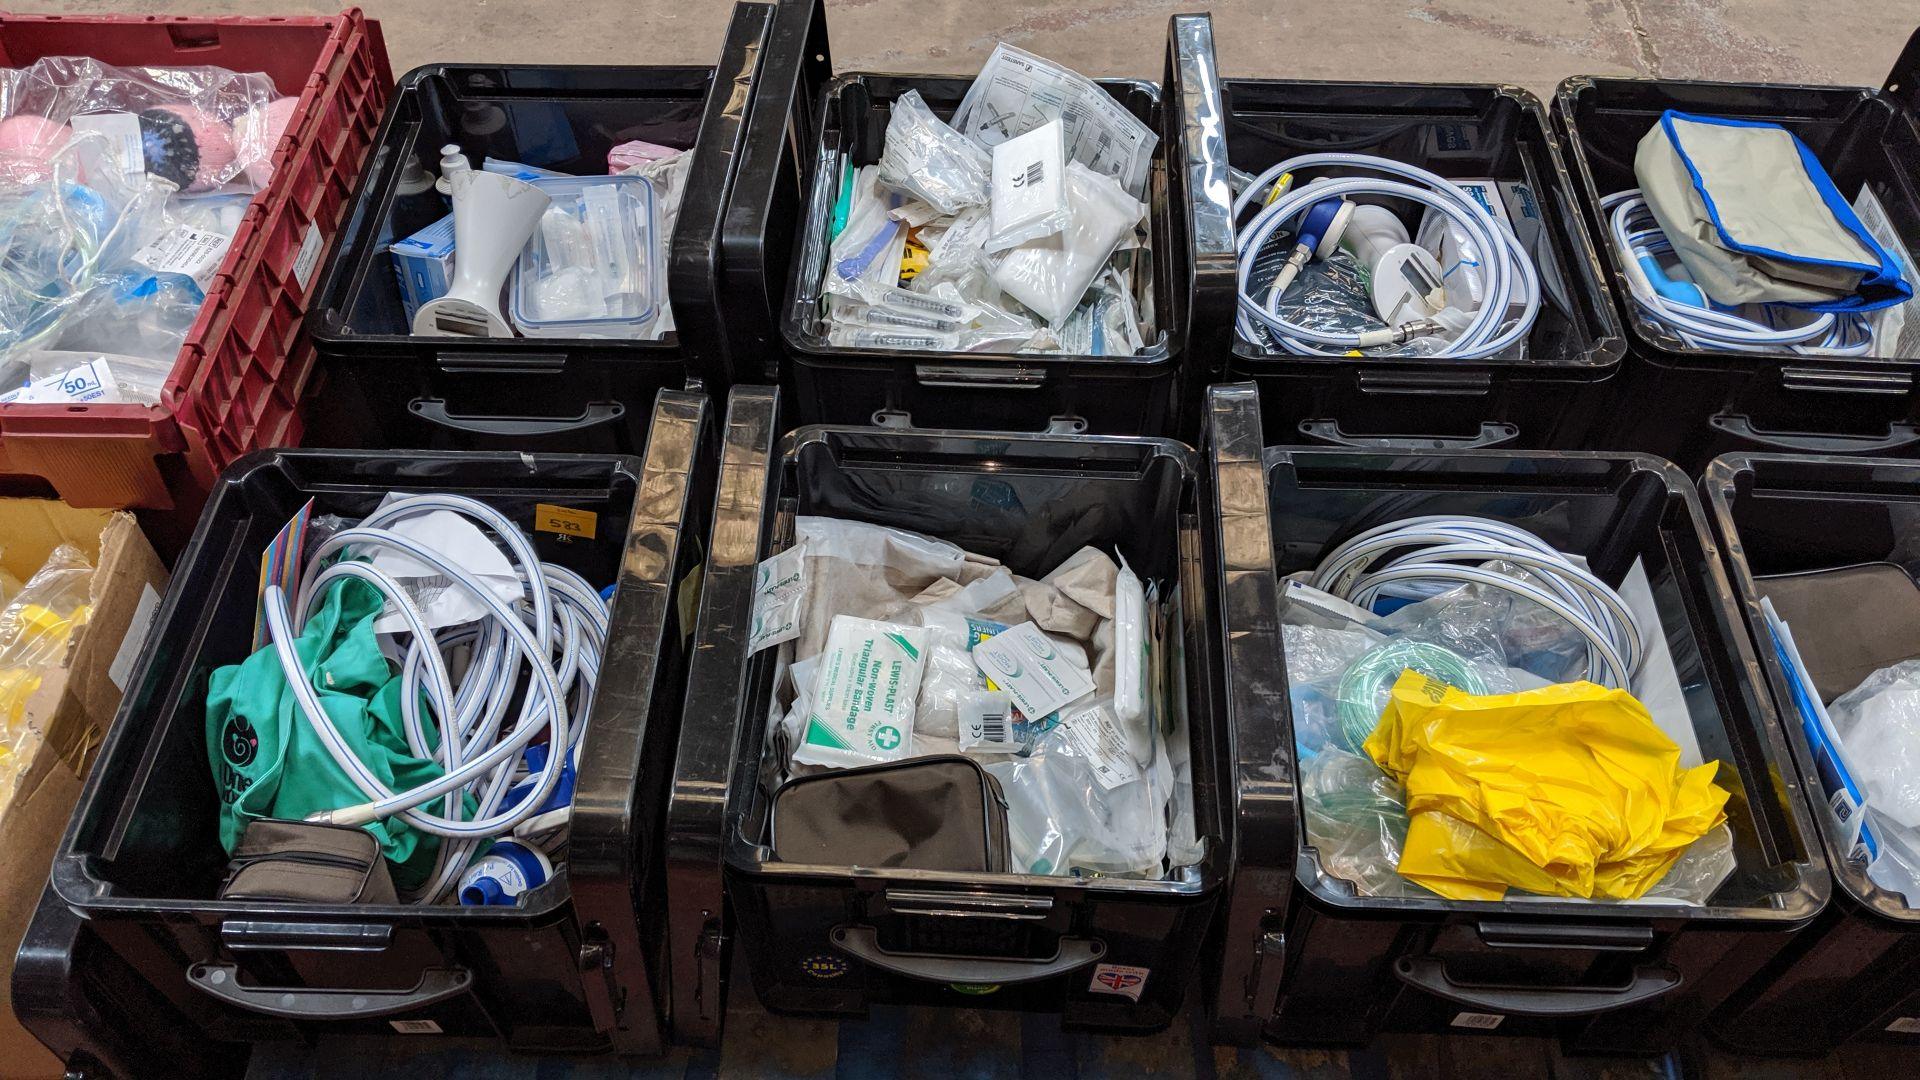 Lot 583 - Contents of 6 crates of assorted medical supplies including blood pressure monitoring equipment,